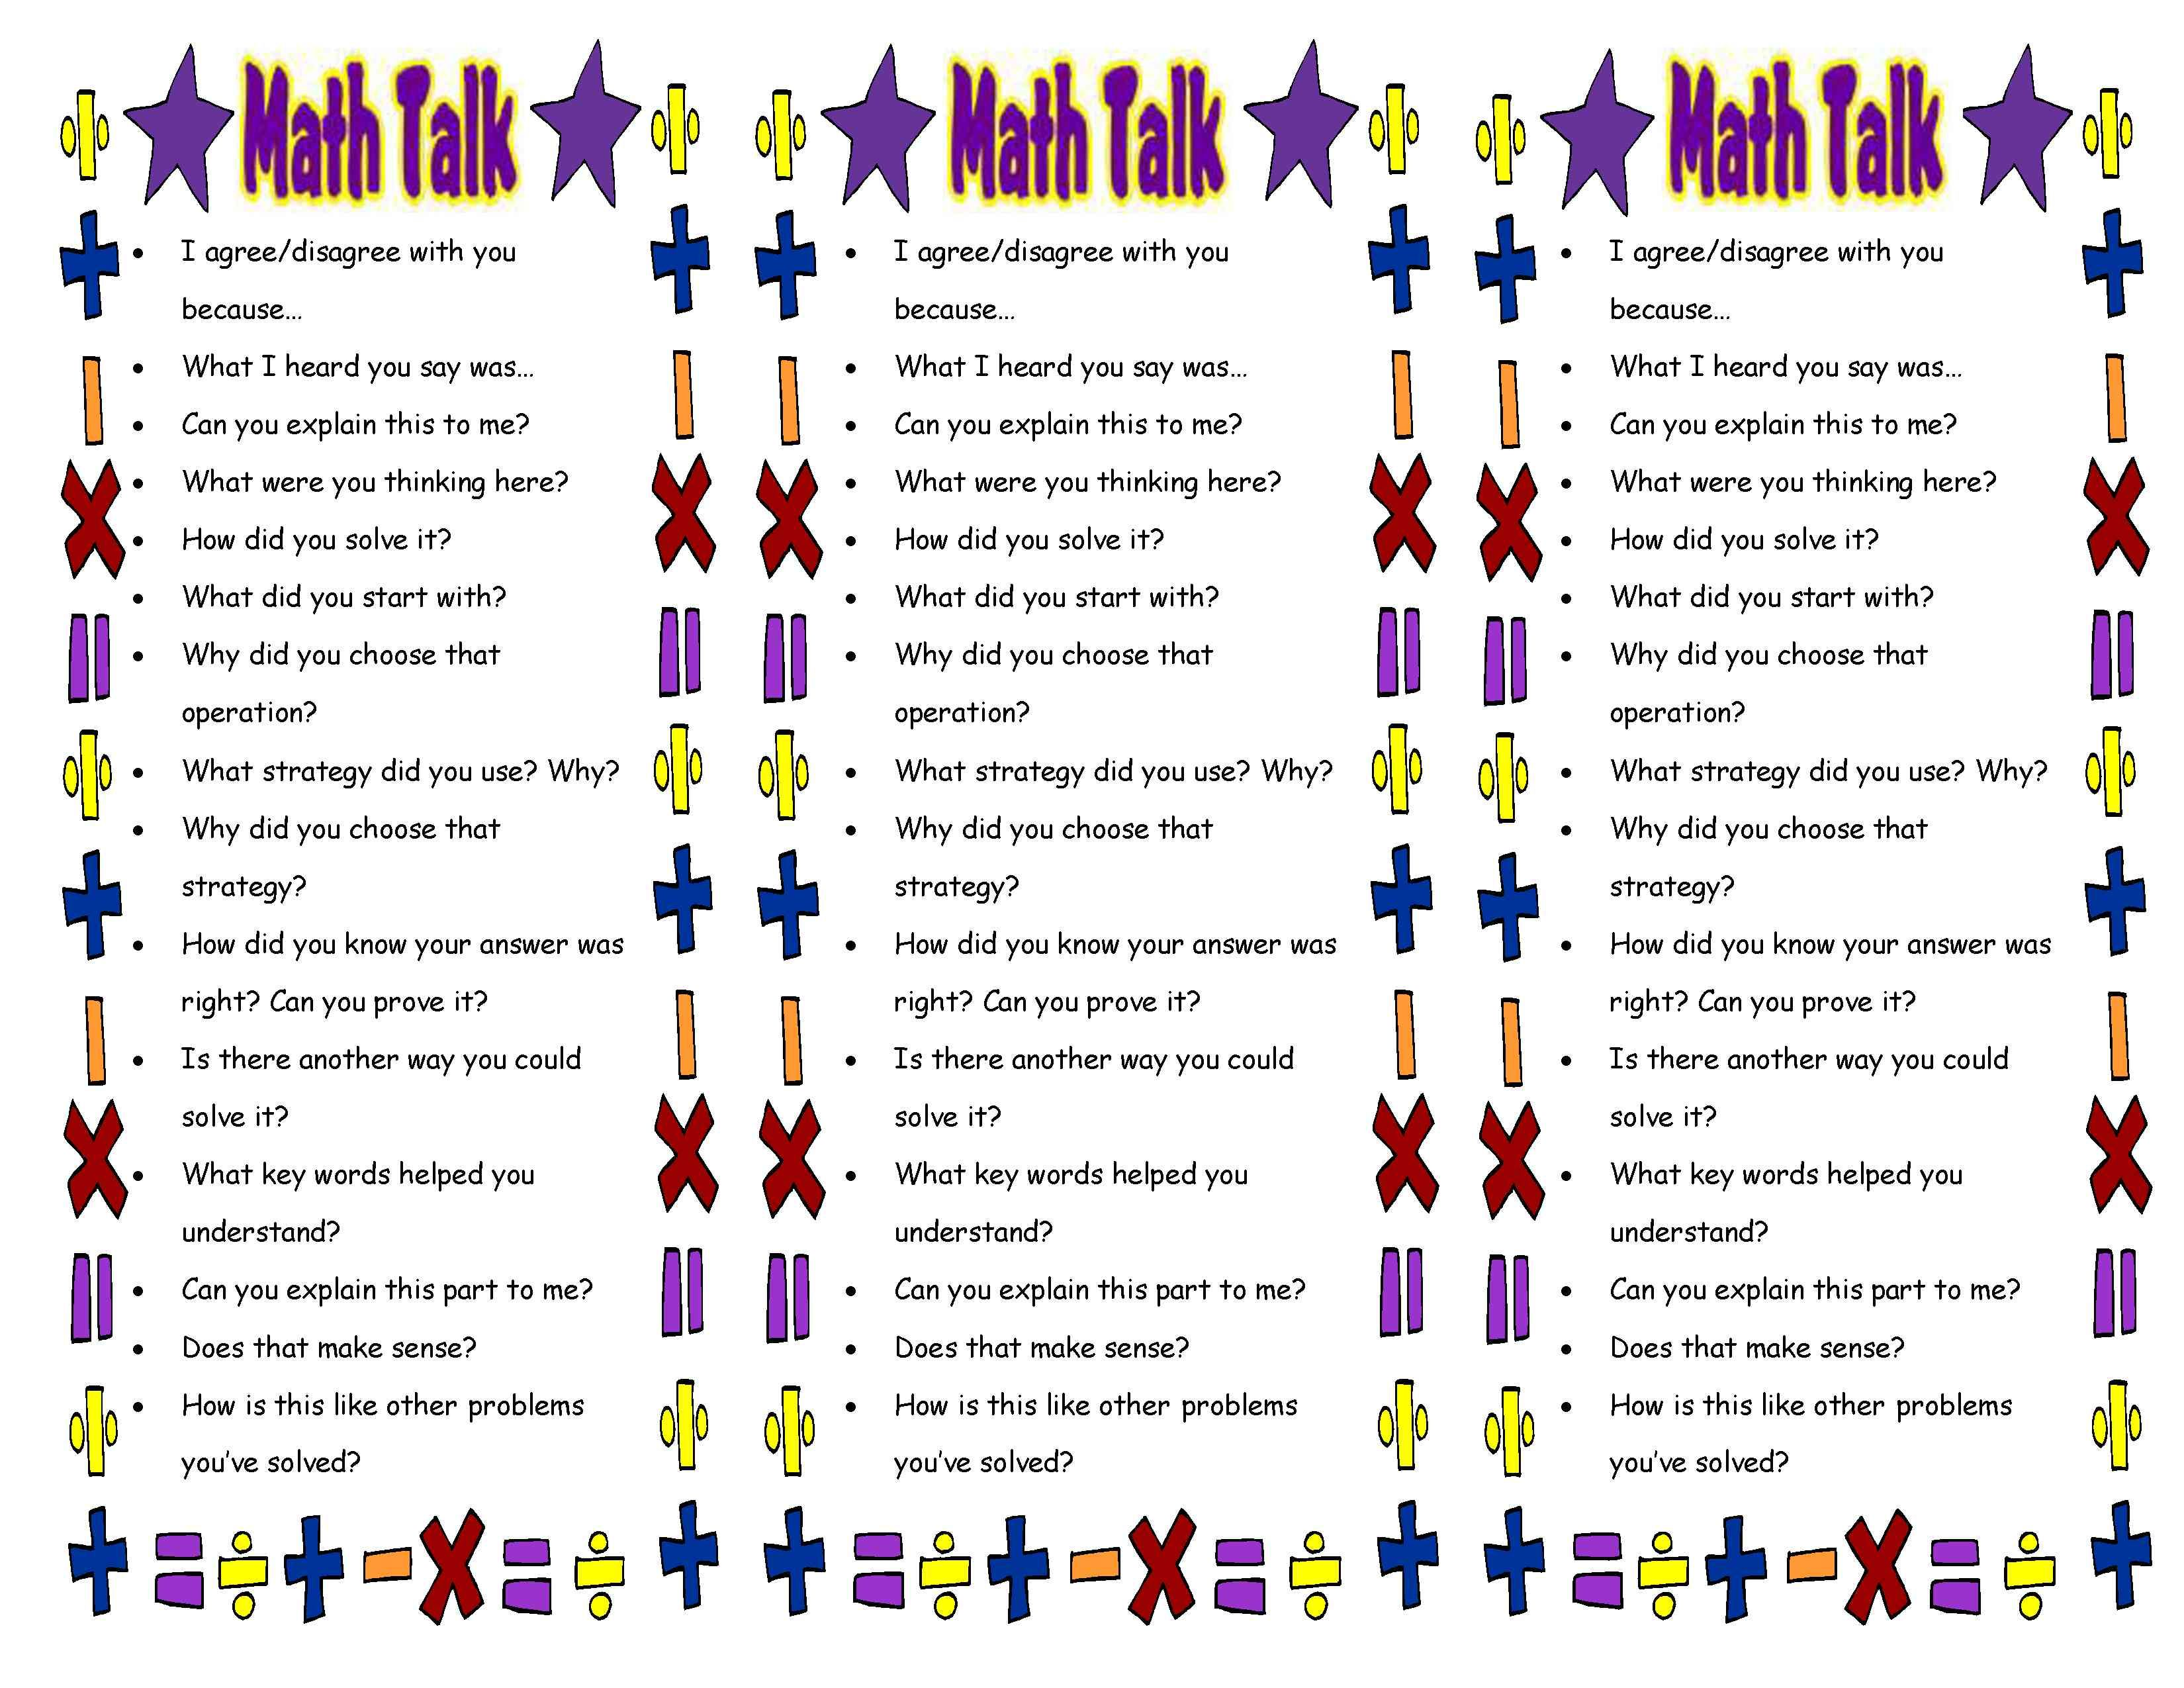 Free printable bookmarks for math from Math Talk 101 | Scholastic.com